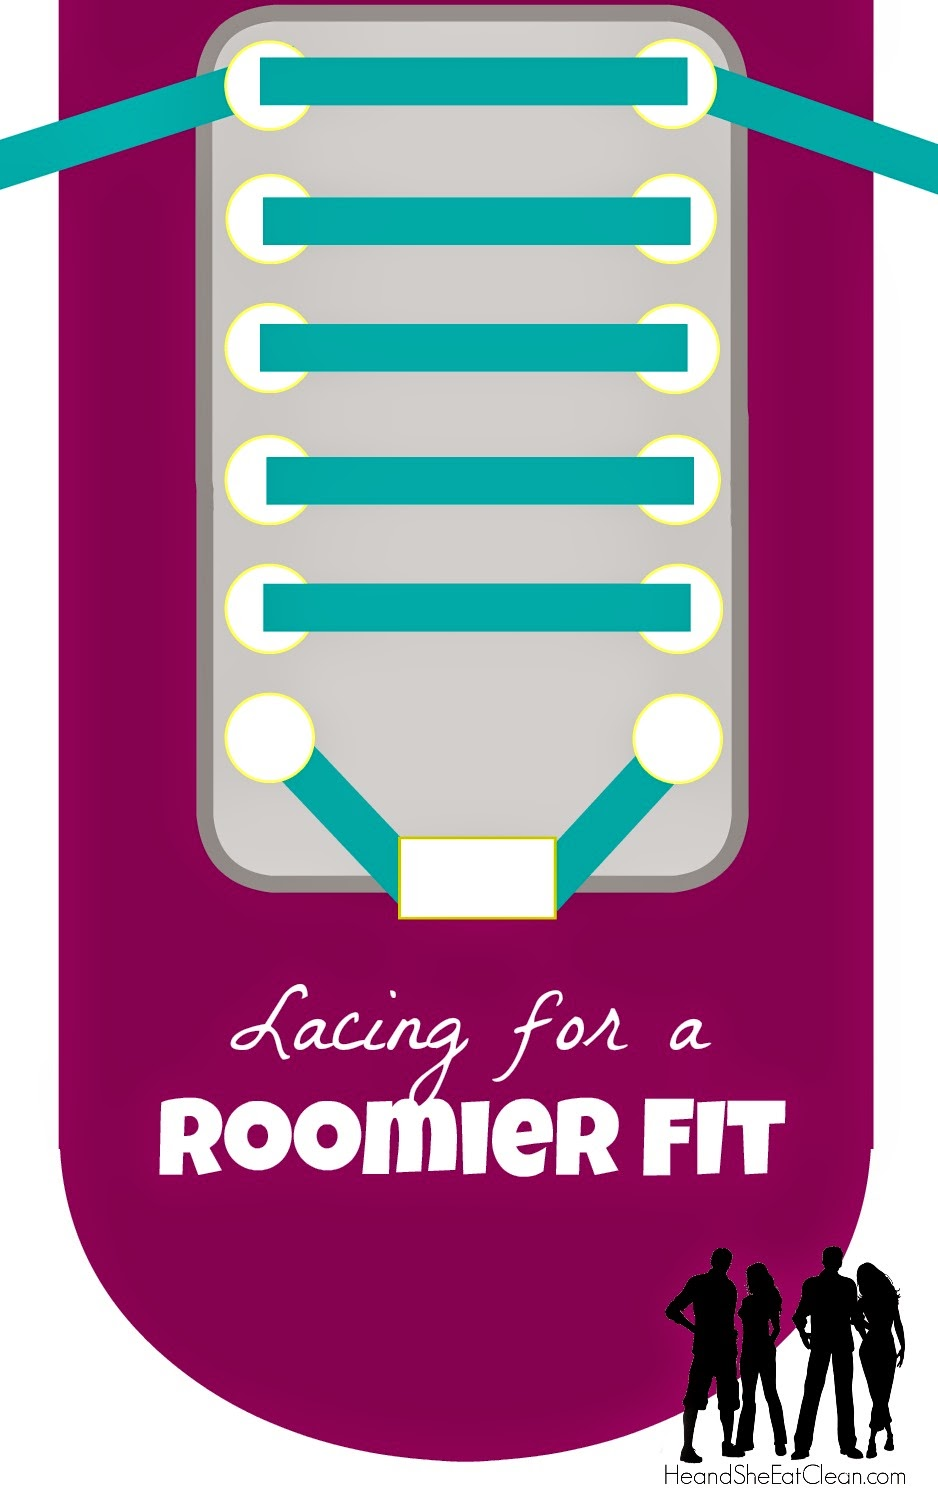 Lacing Your Running Shoes for Fit and Function - Roomier Fit | He and She Eat Clean